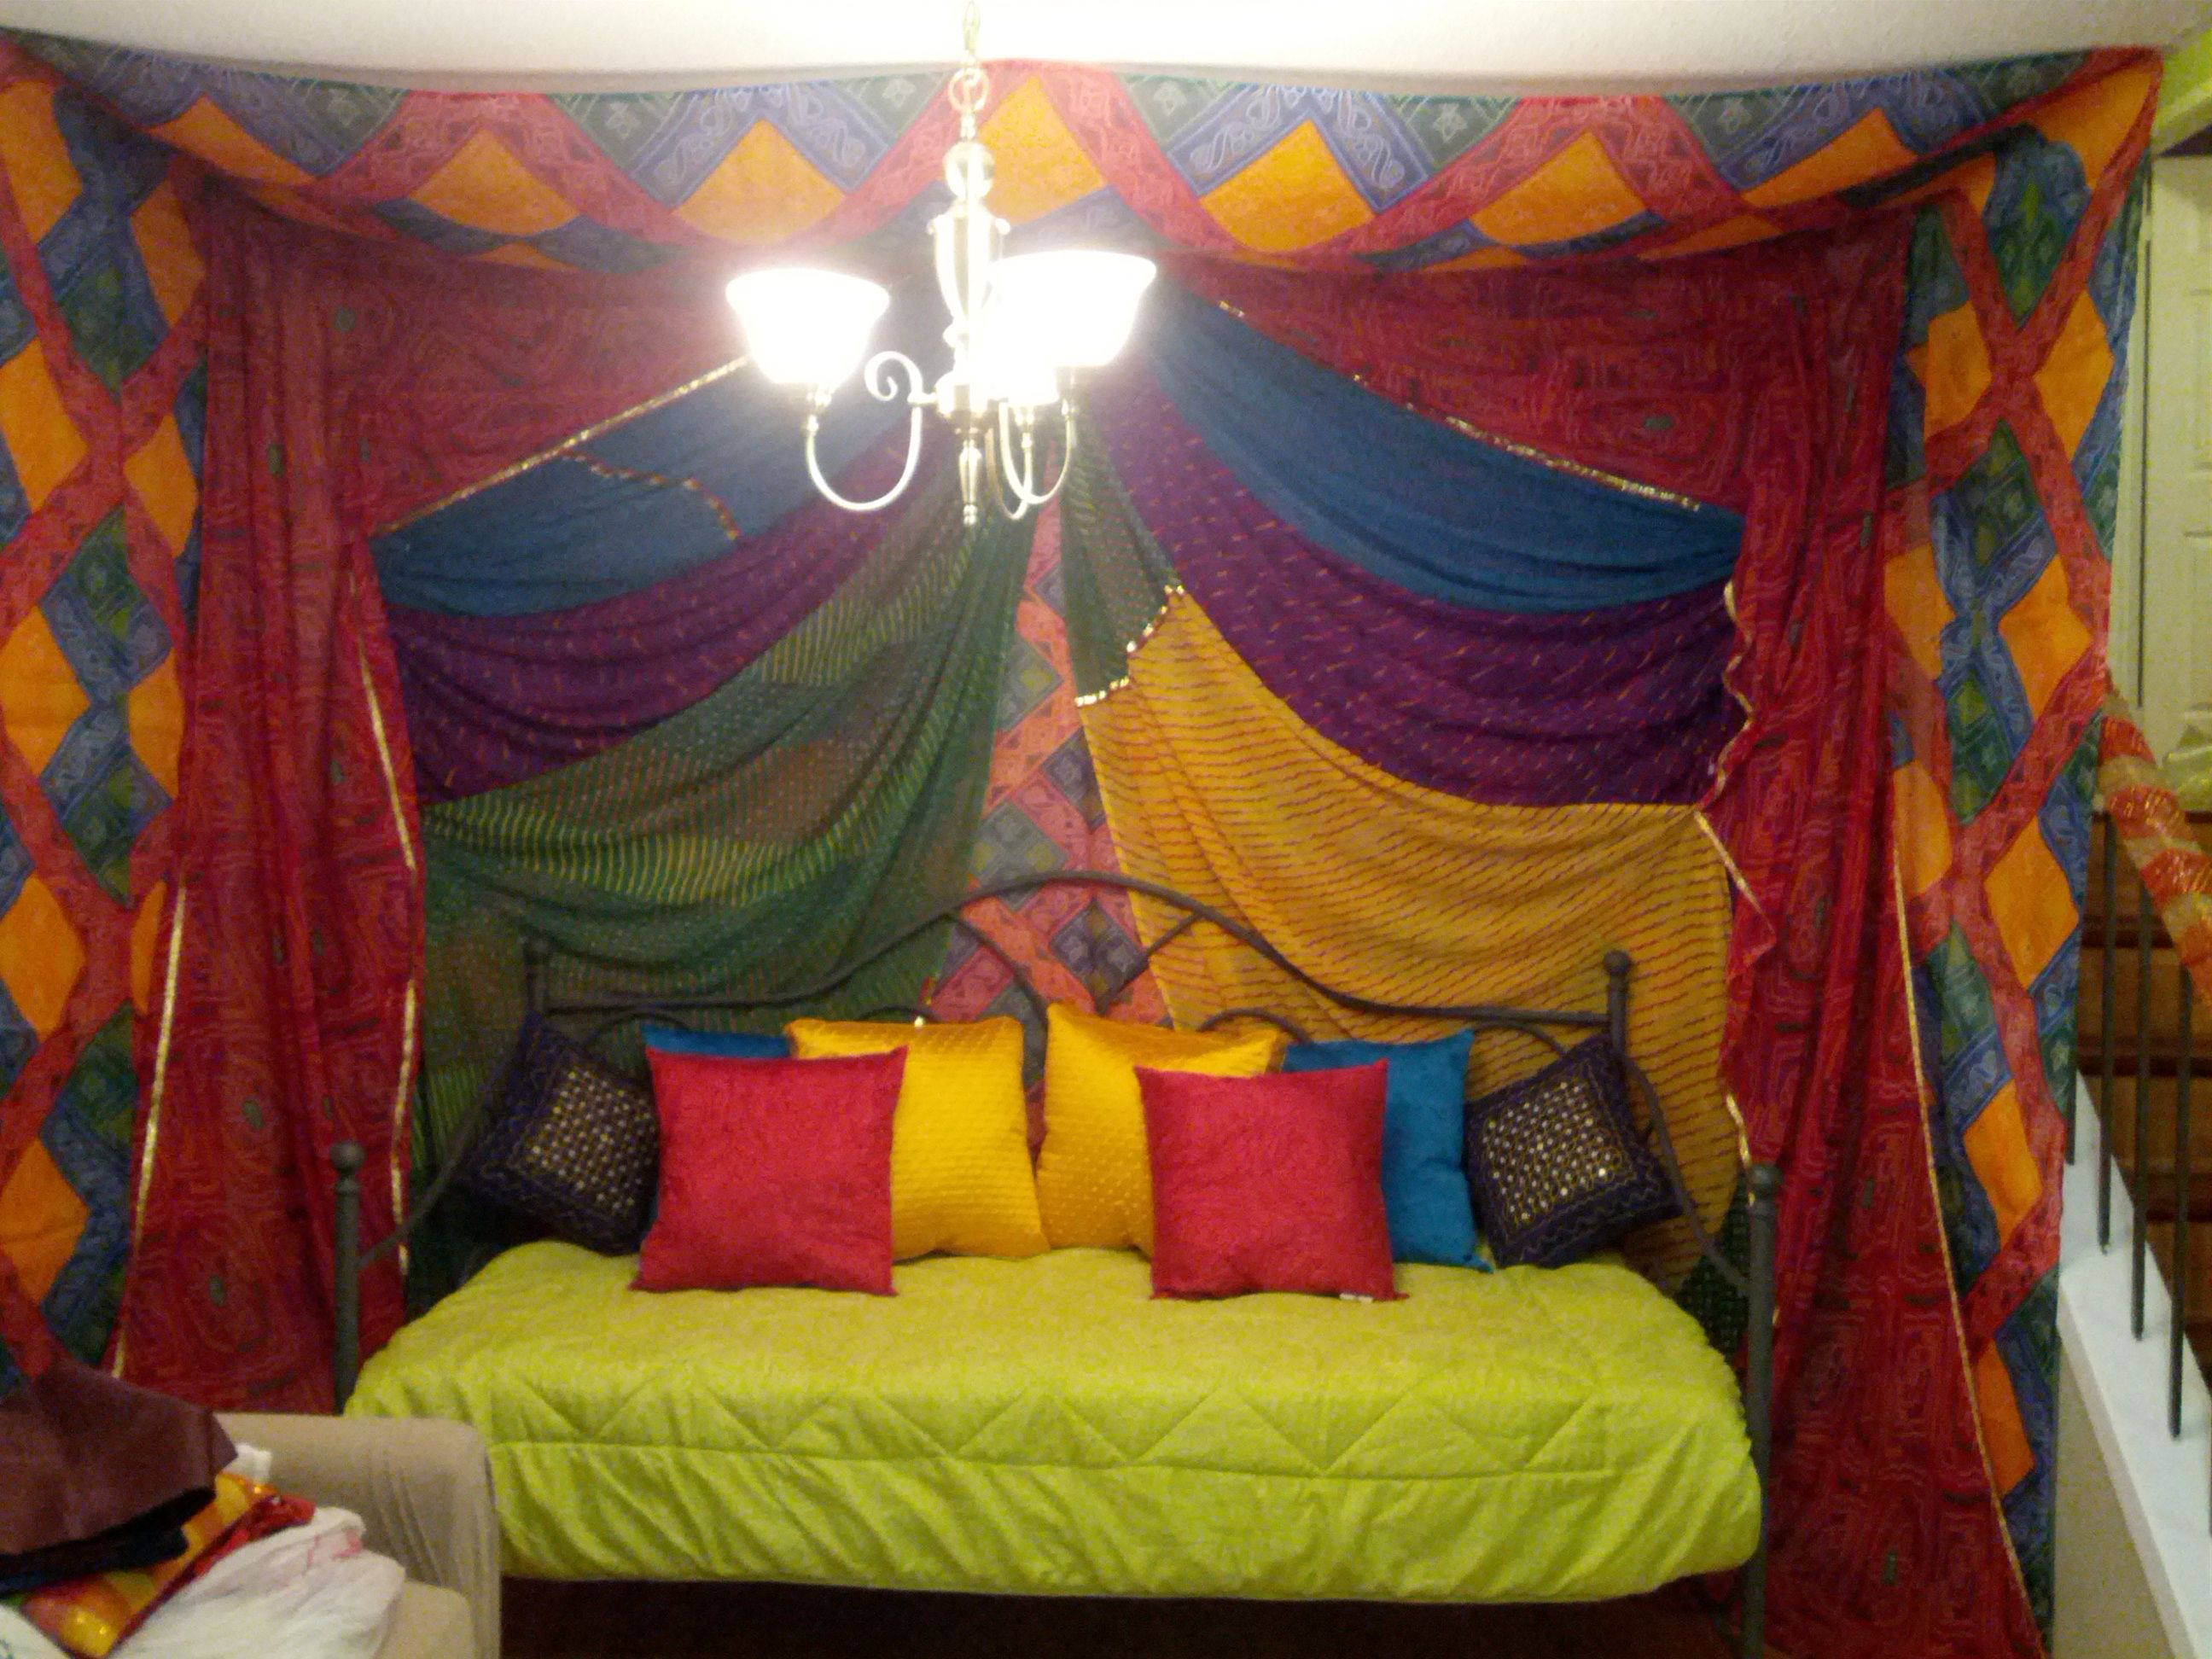 Indian wedding decor at home for a rajasthani inspired for House decorations